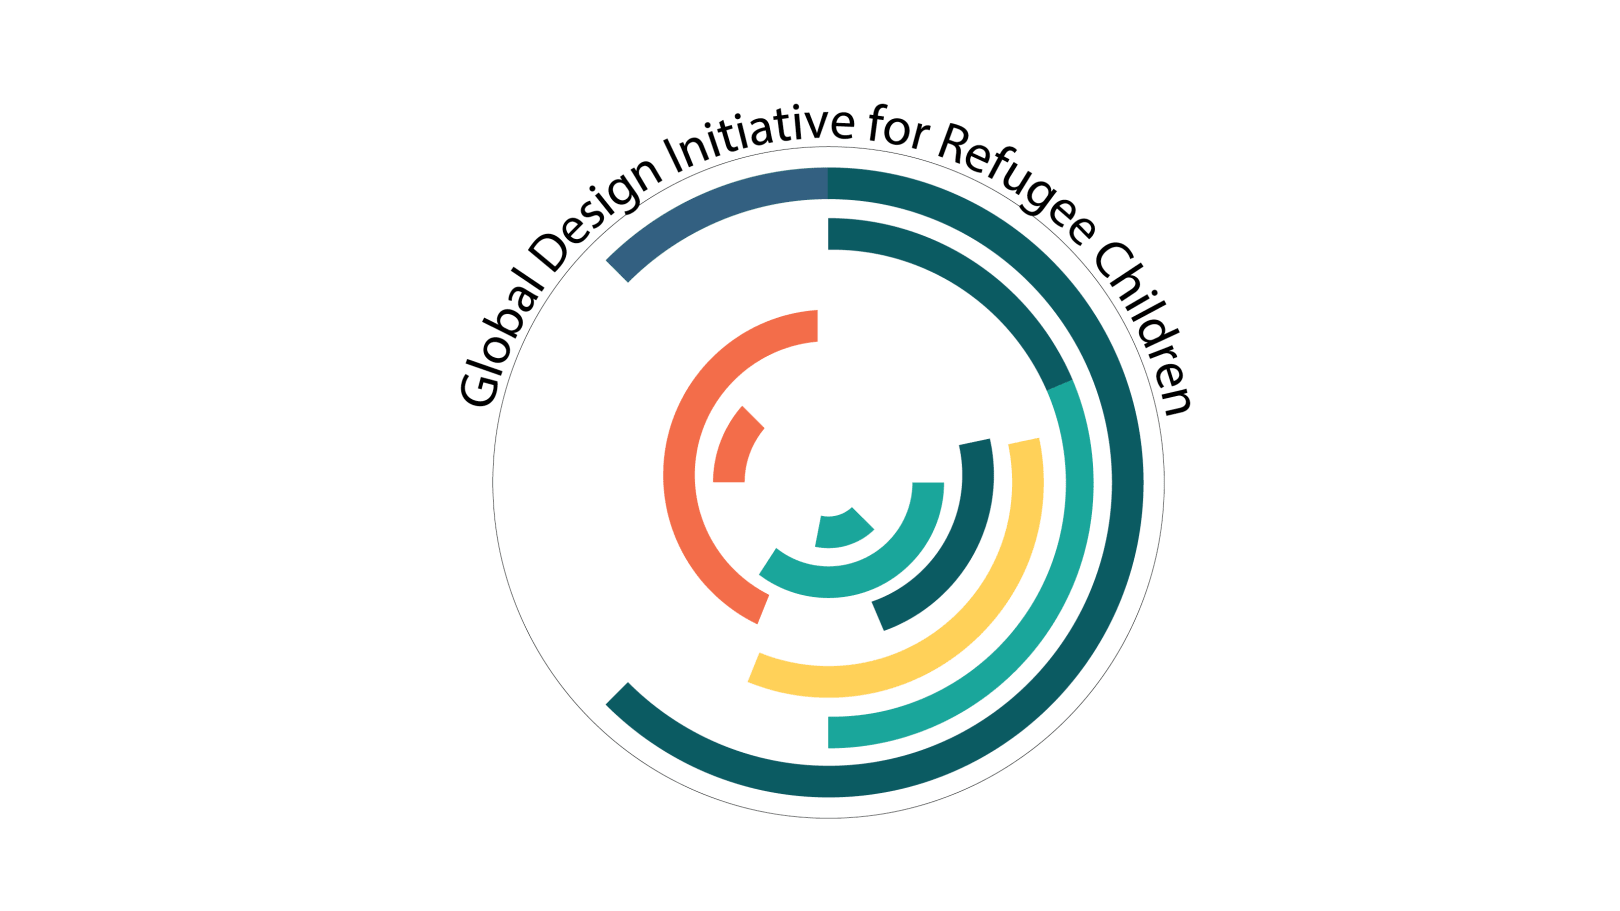 Boston Society of Architects- Global Design Initiative for Refugee Children-03